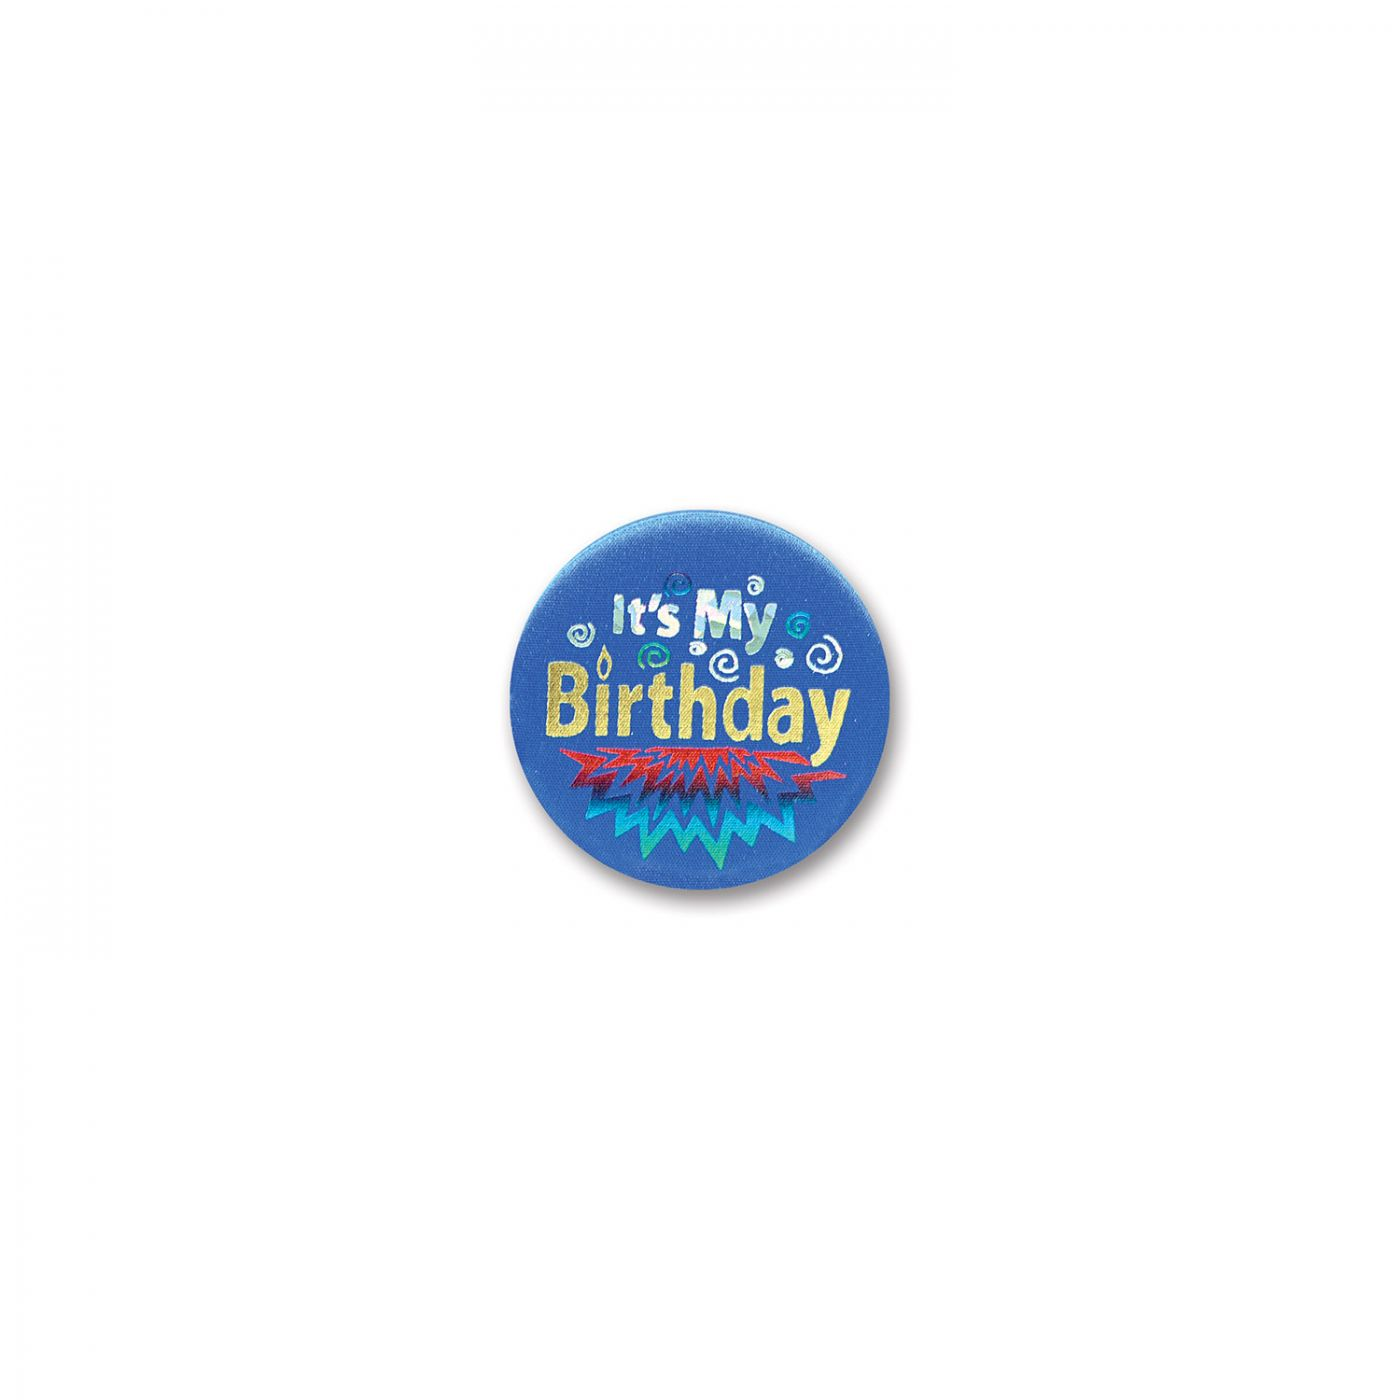 Image of Blue It's My Birthday Satin Button (6)